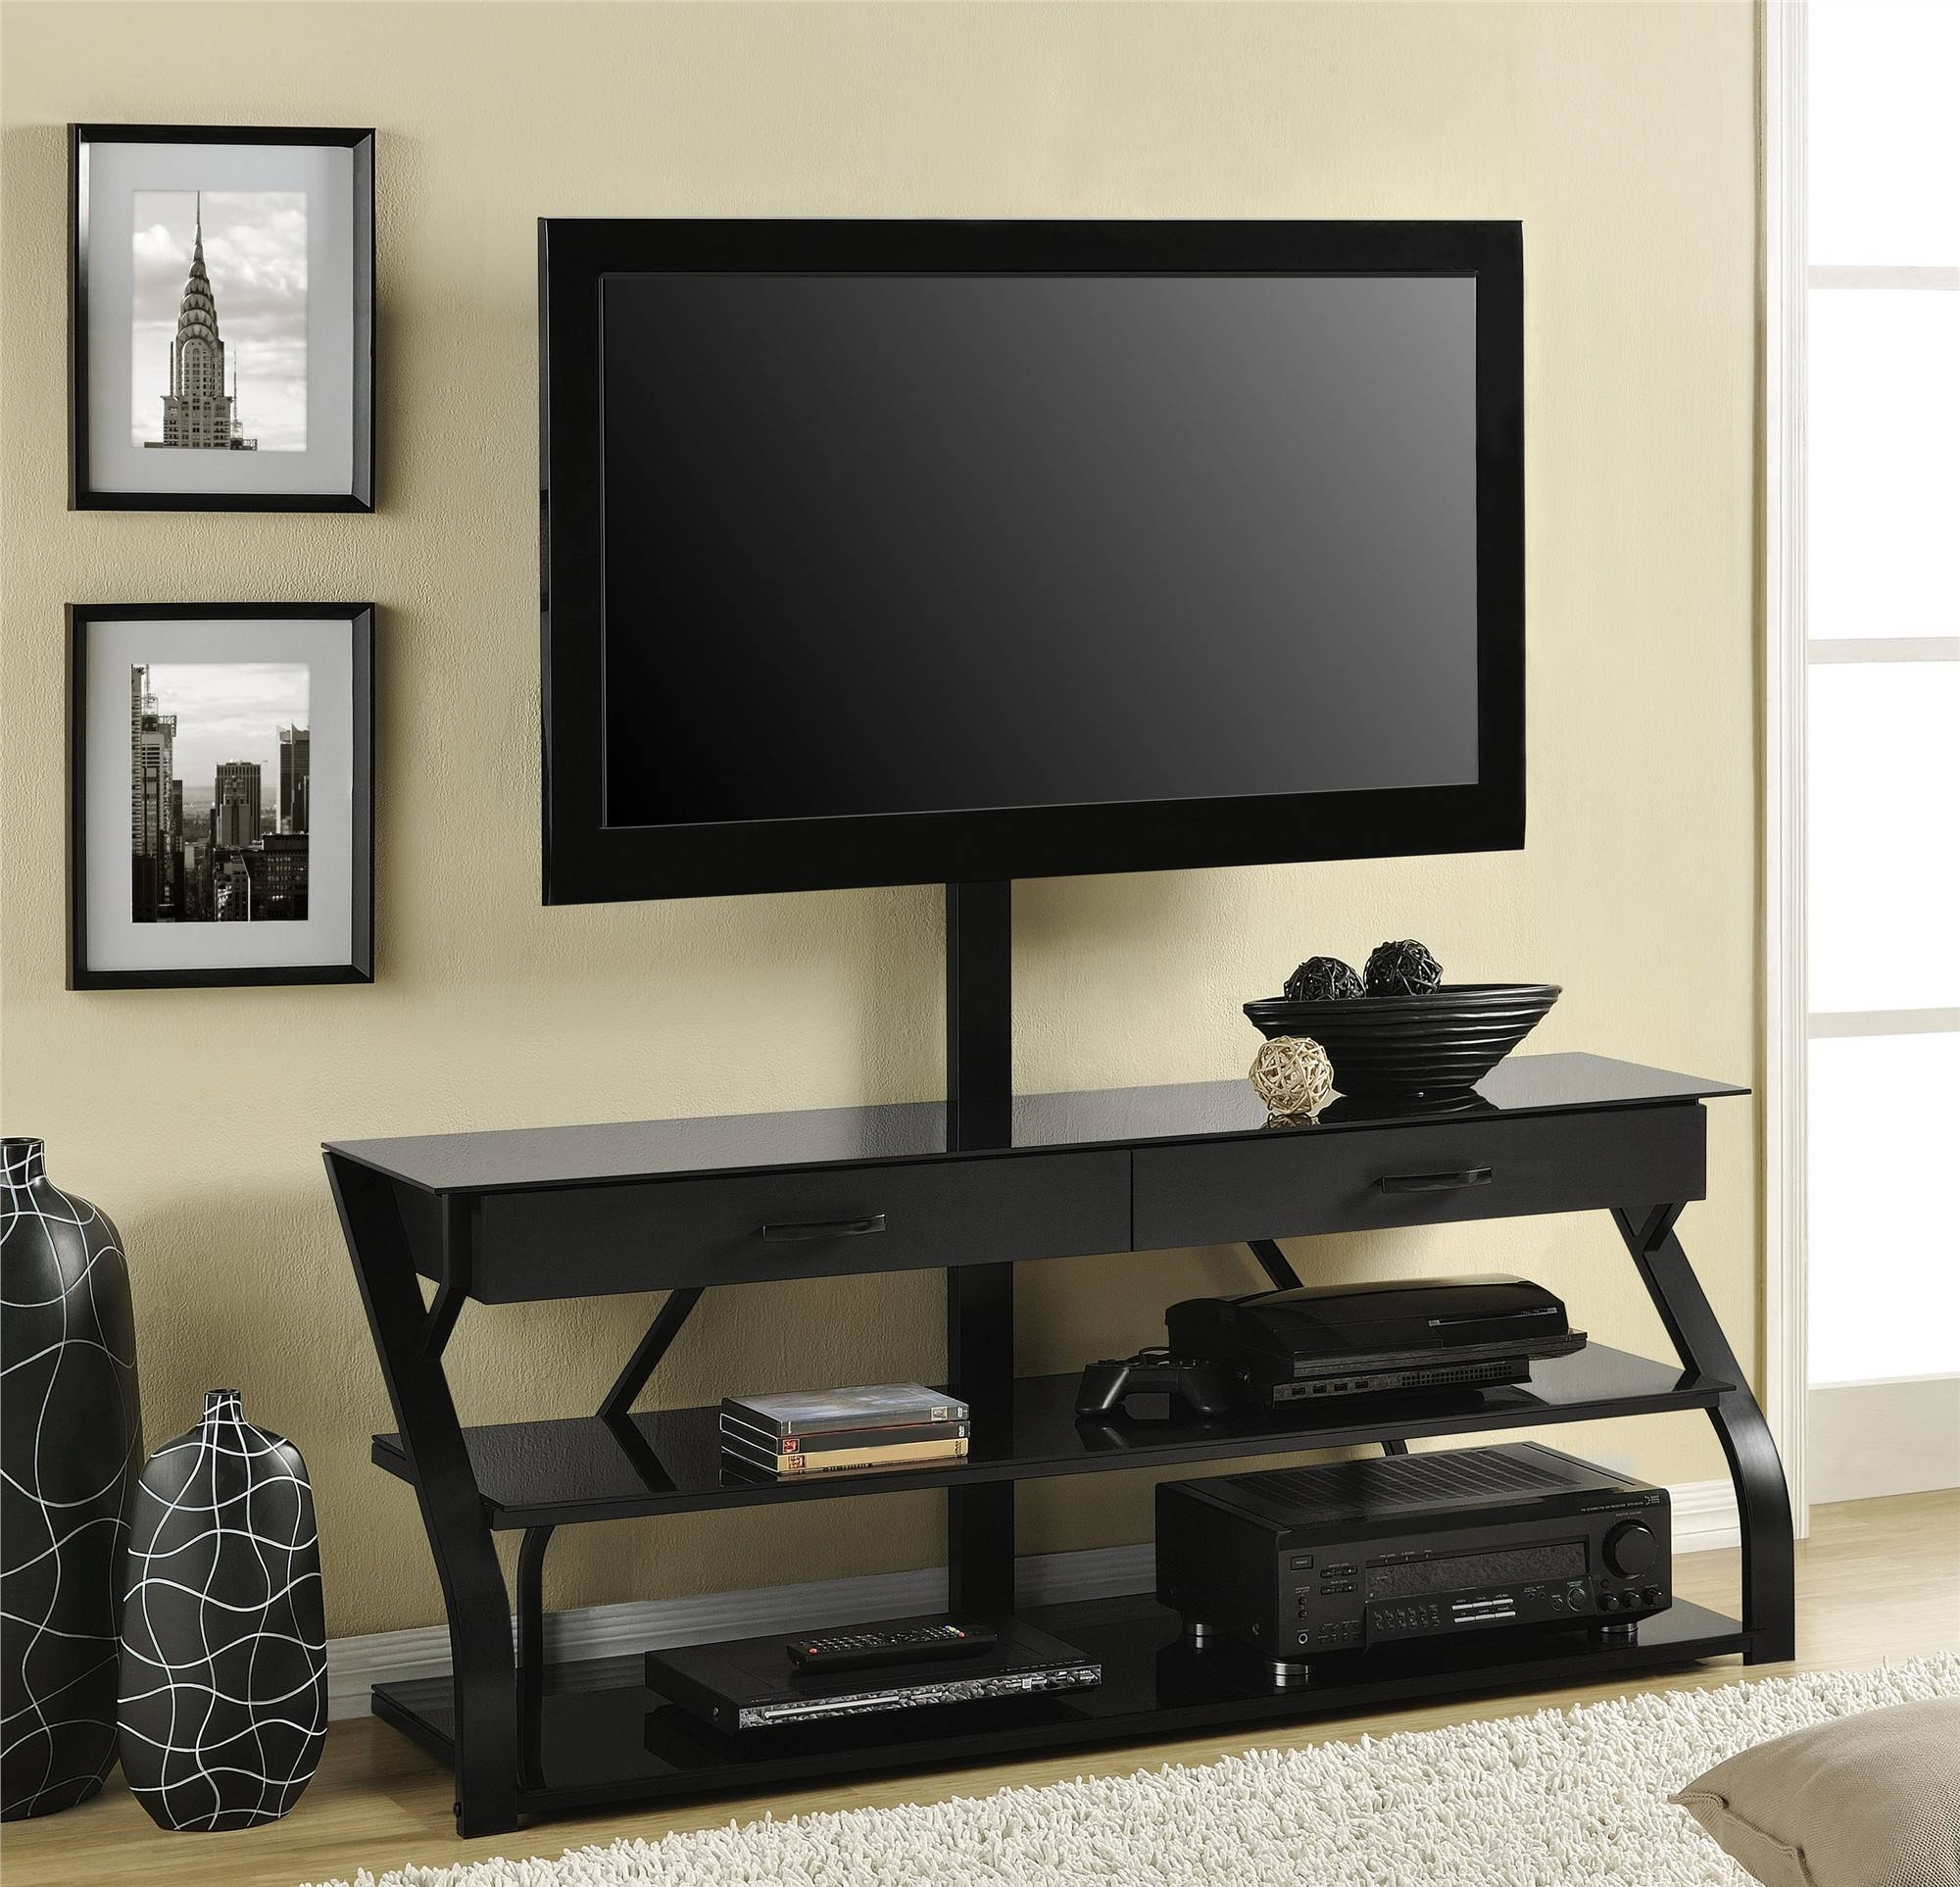 Tall Tv Stand For Bedroom Altra Furniture File Cabinet Also Regarding Stylish Tv Stands (View 10 of 15)